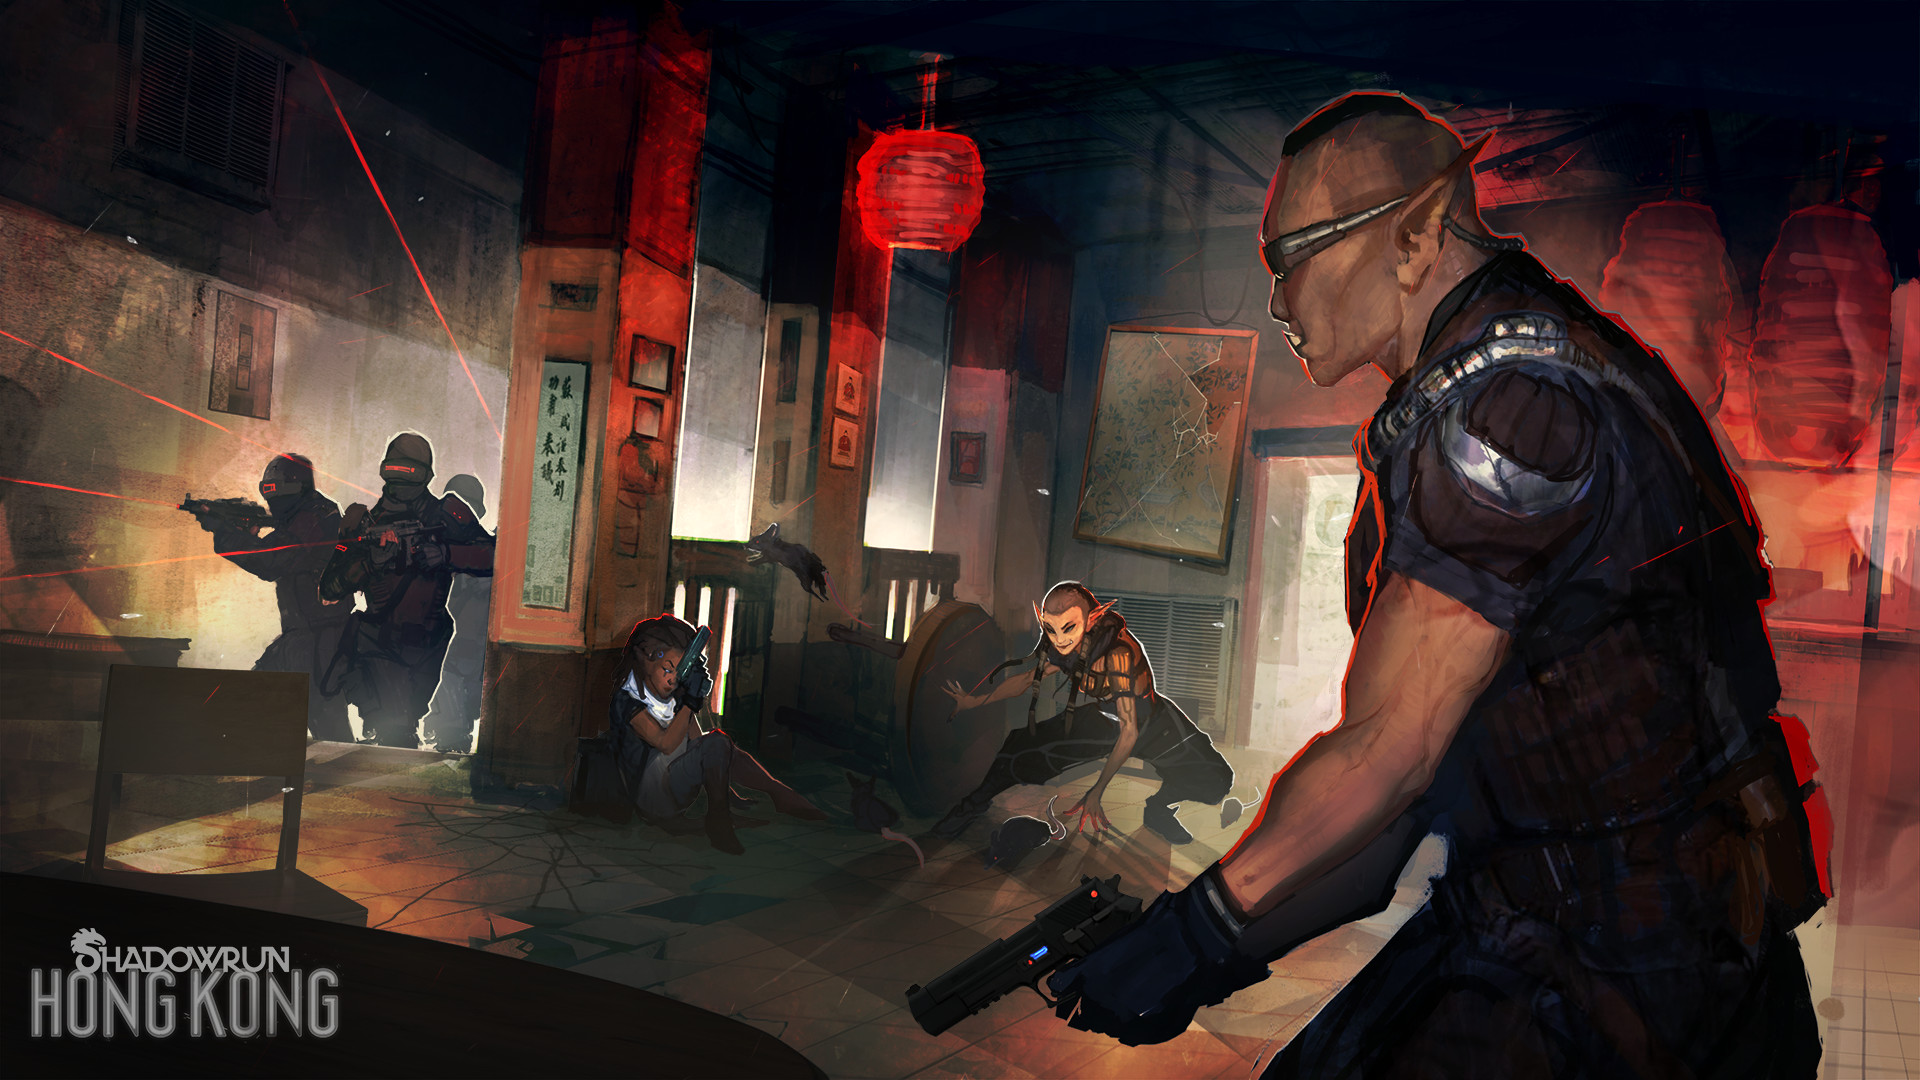 Concept art from the Shadowrun: Hong Kong video game by Harebrained Schemes